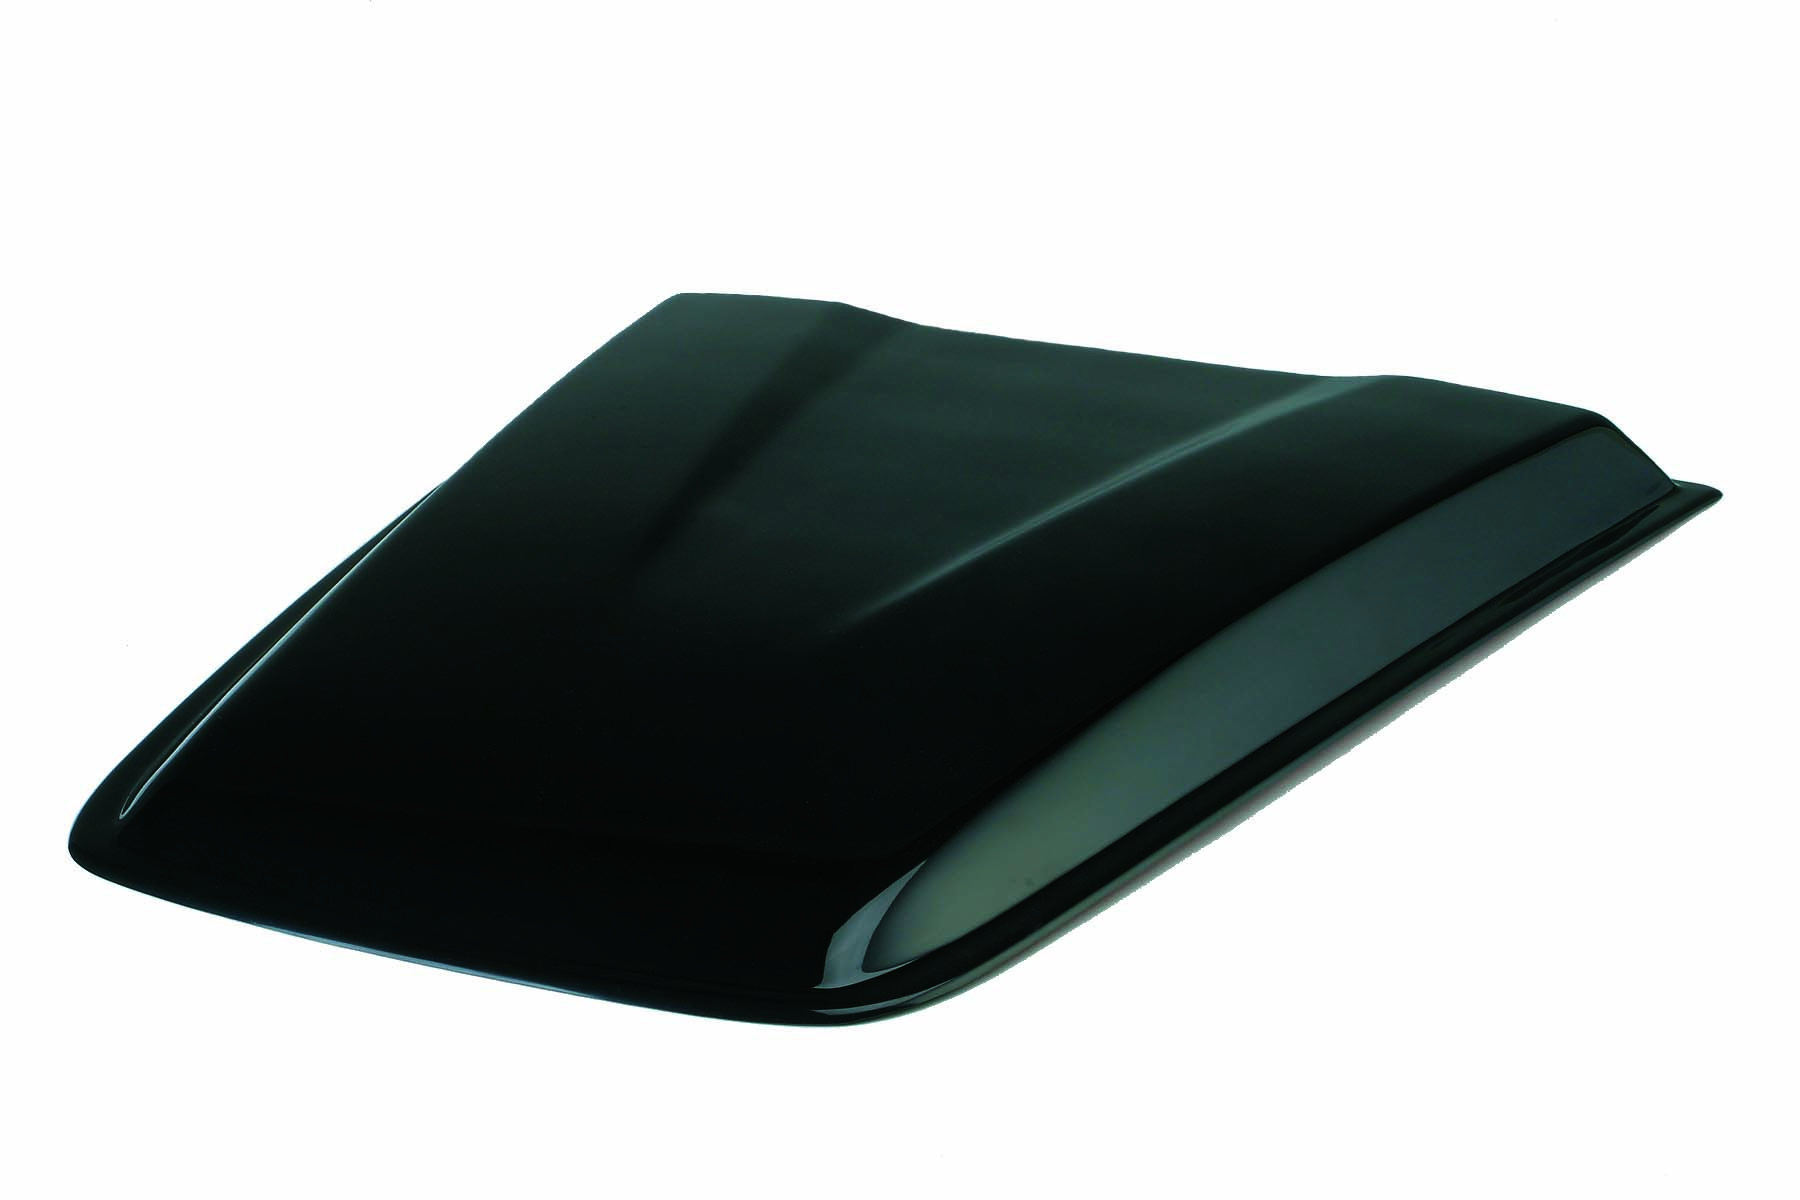 Gmc Yukon 2001-2006 Denali Xl Truck Cowl Induction Hood Scoop